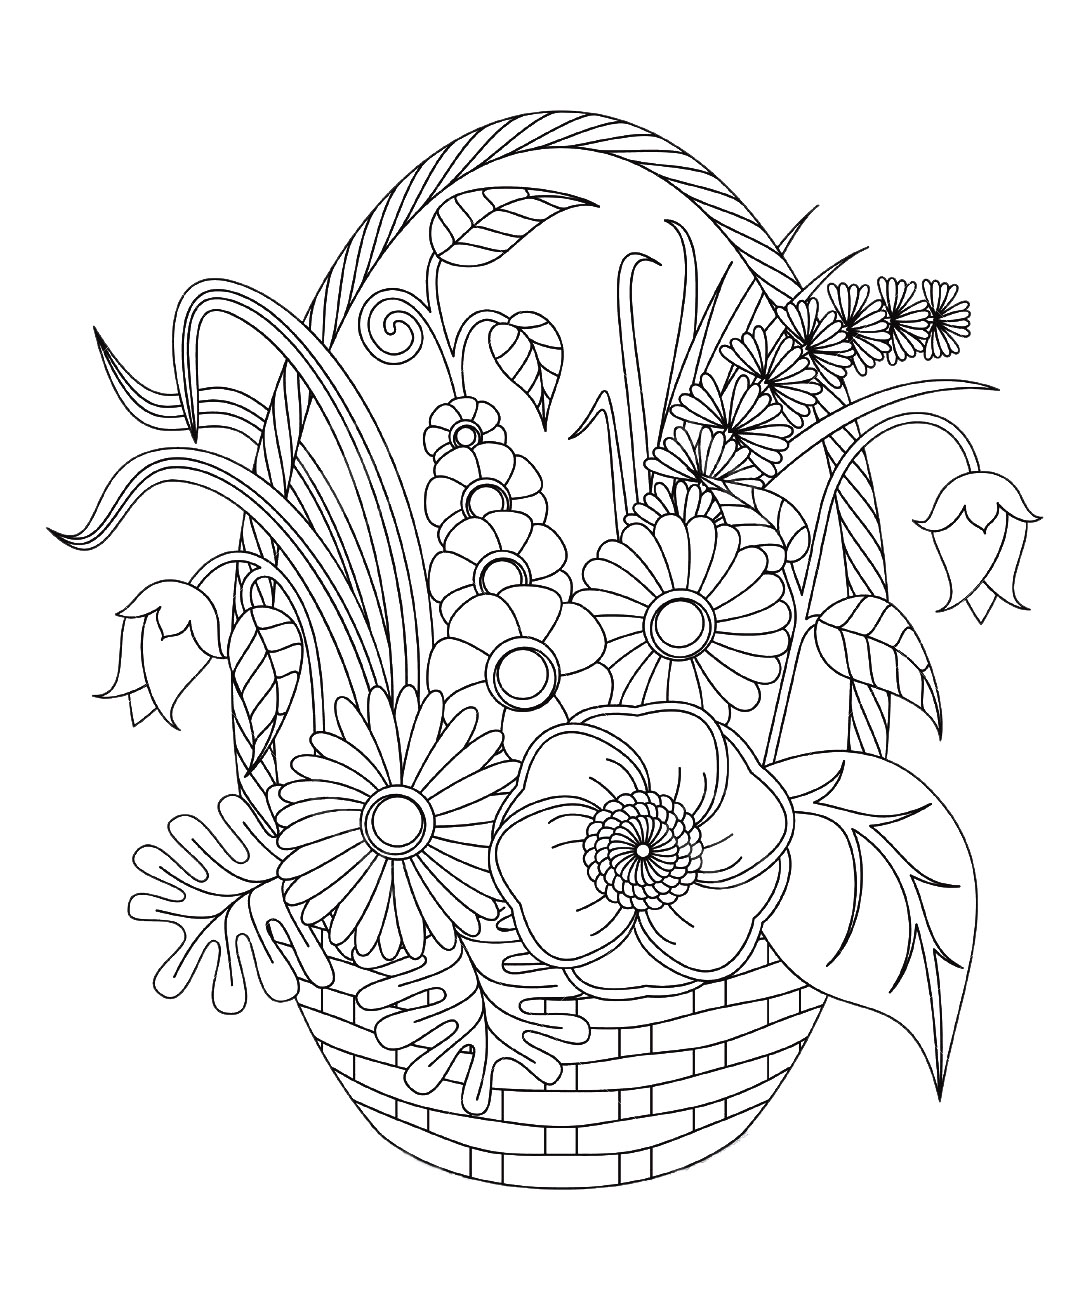 Fleurs variees dans un panier flowers vegetation coloring pages for adults justcolor - Dessin vegetation ...